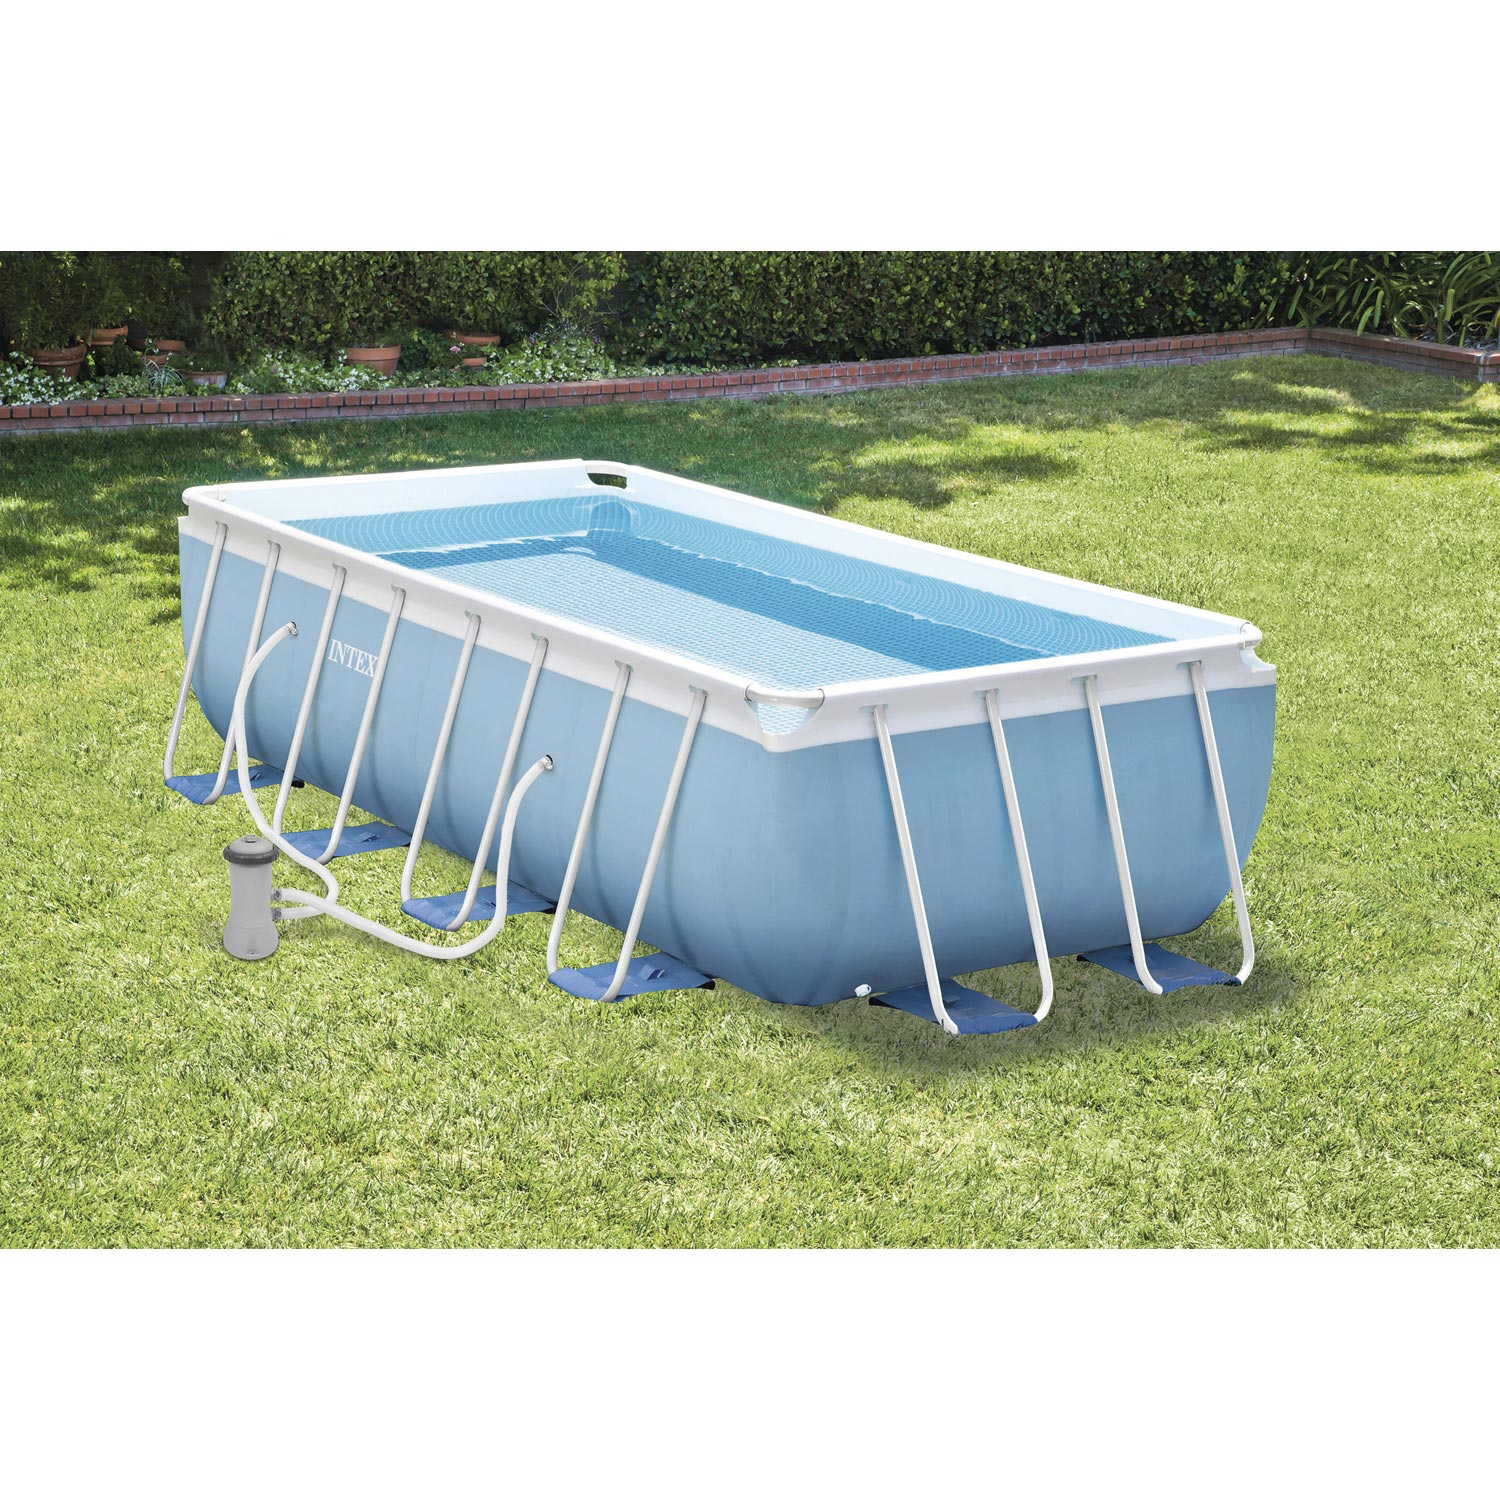 Piscine hors sol autoportante tubulaire prism frame intex for Leroy merlin piscine